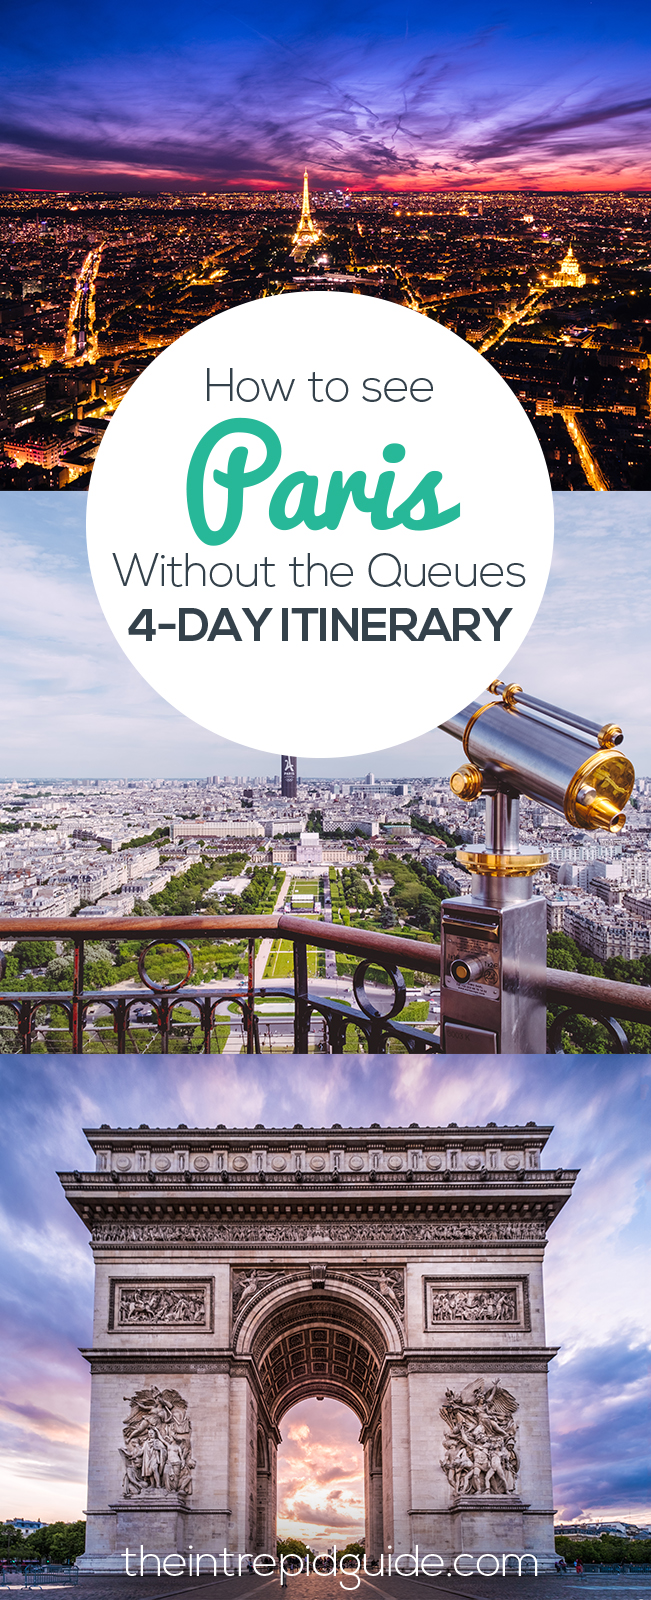 Top Paris Attractions - How to see Paris without the Queues - 4-Day Itinerary